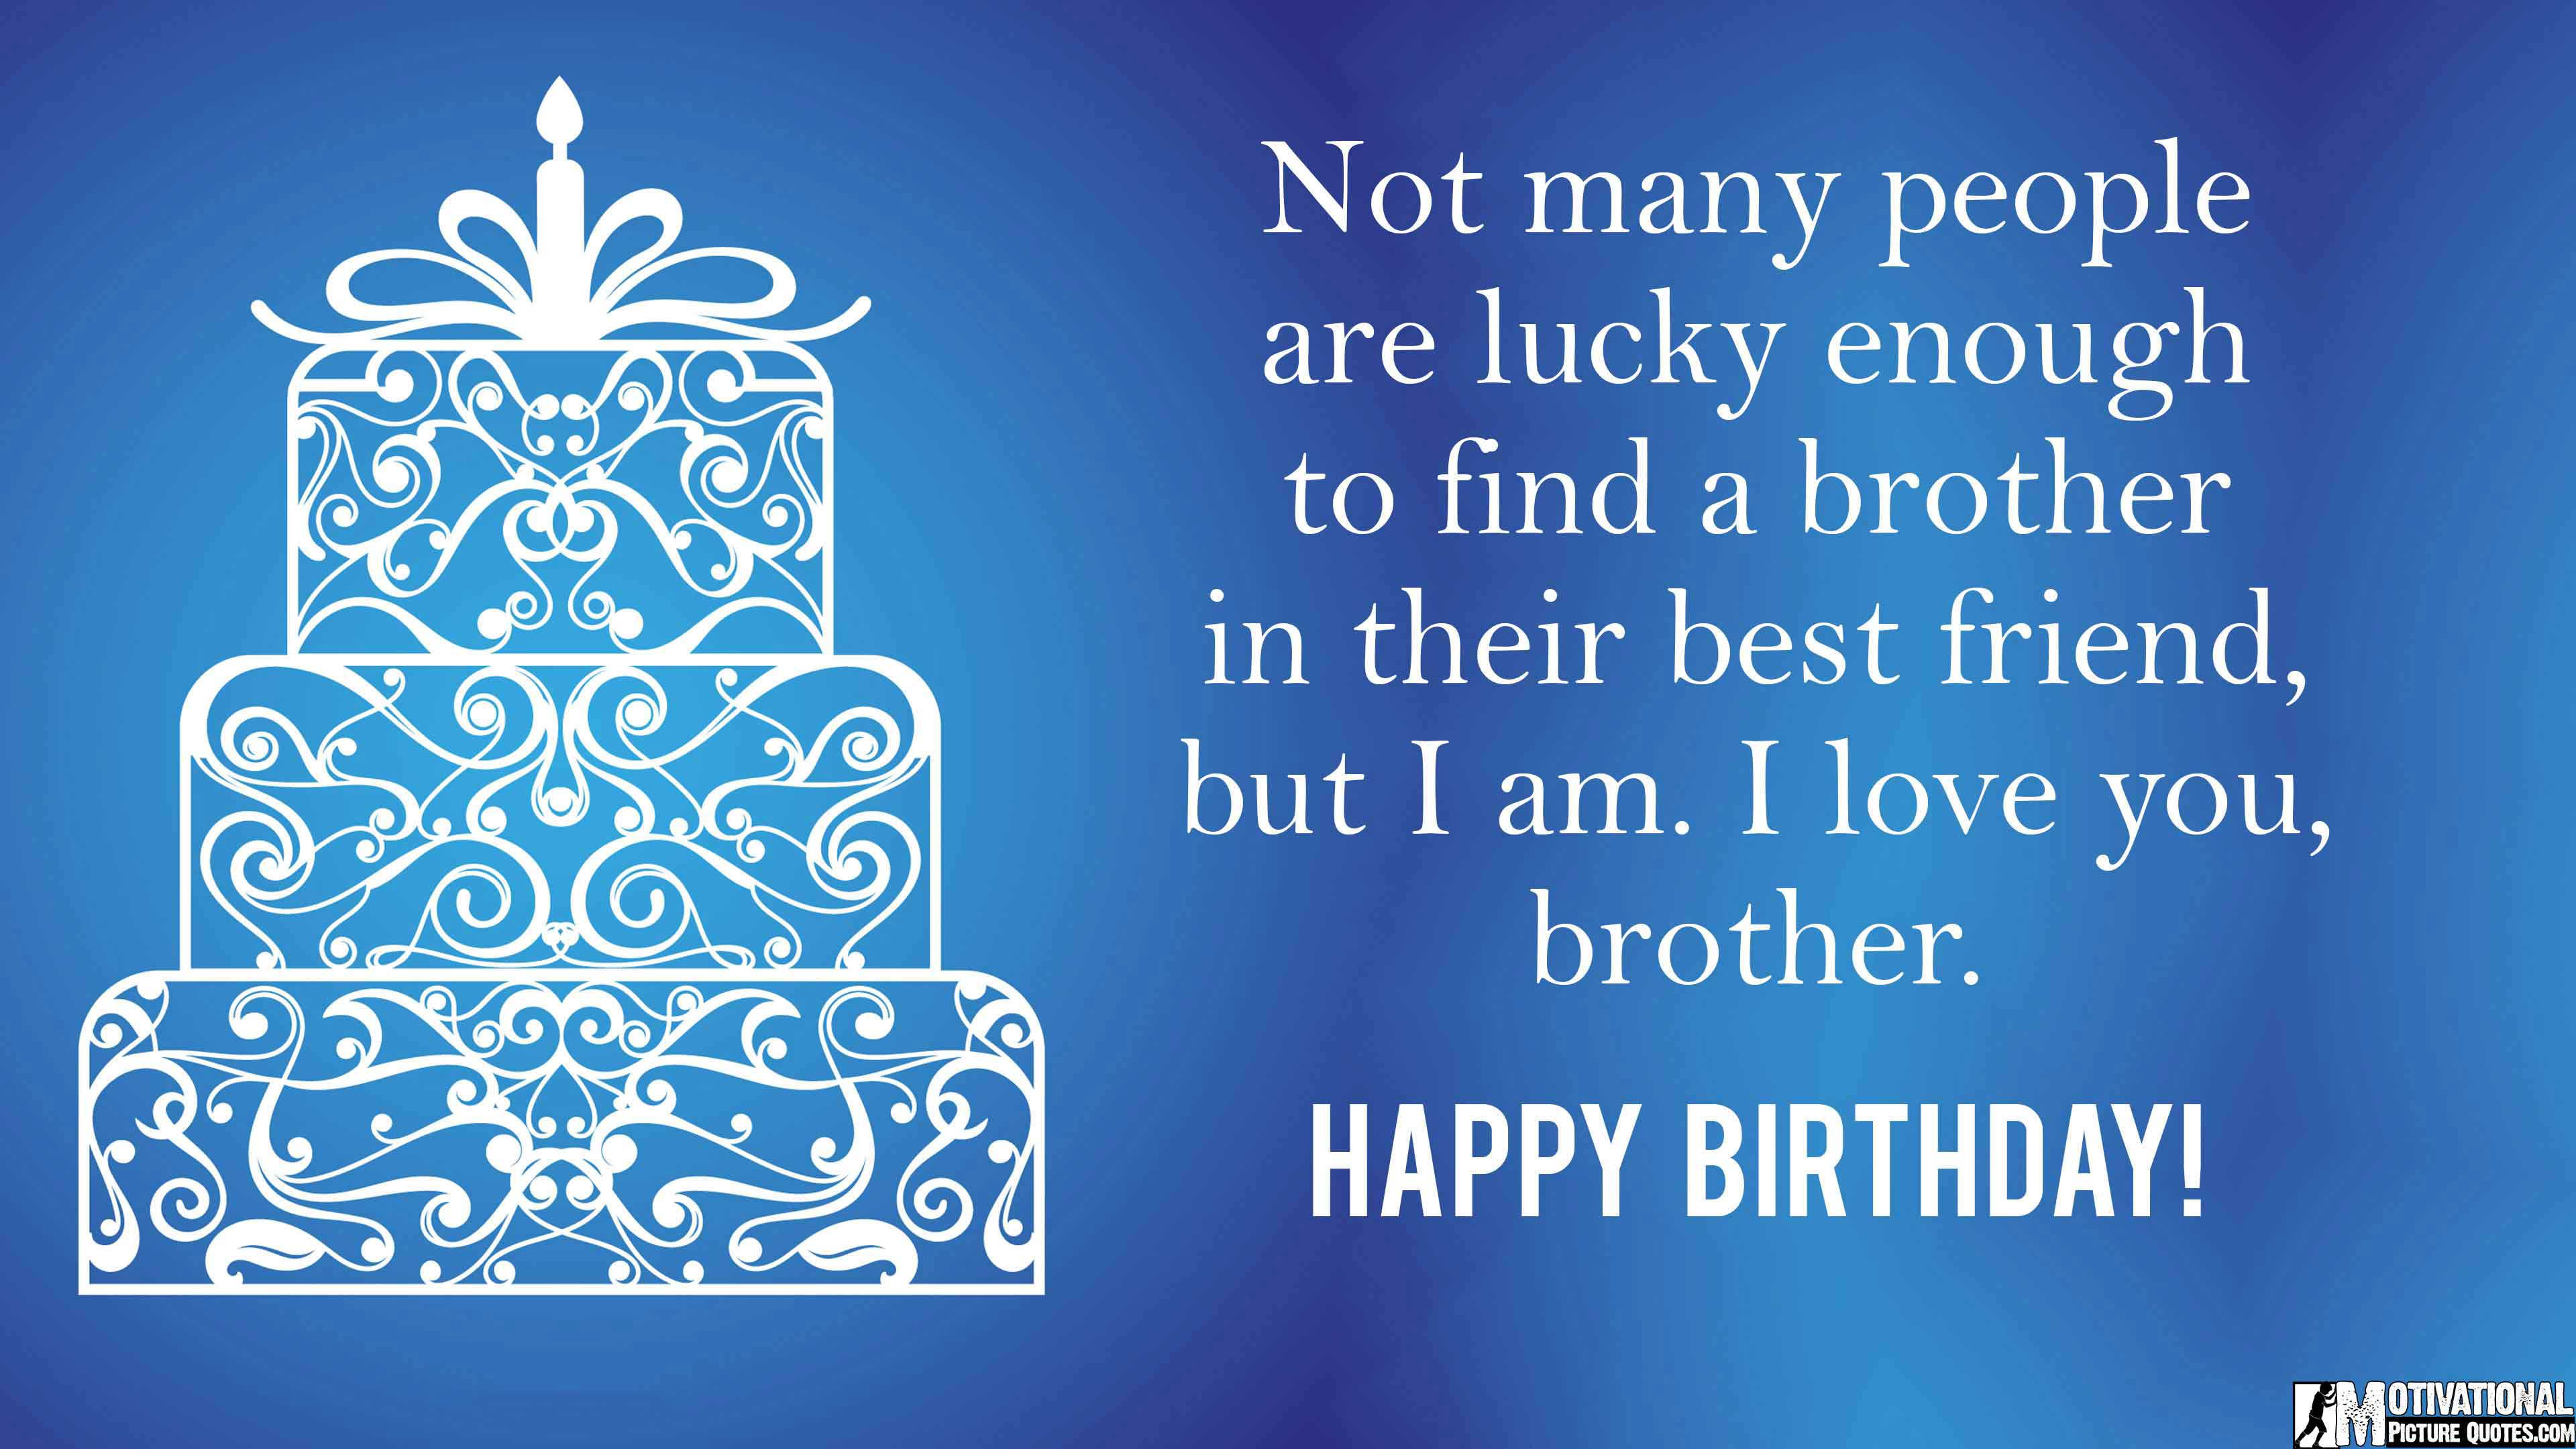 18th birthday message for bestfriend tagalog labzada wallpaper birthday greetings for cousin tagalog images greetings card design m4hsunfo